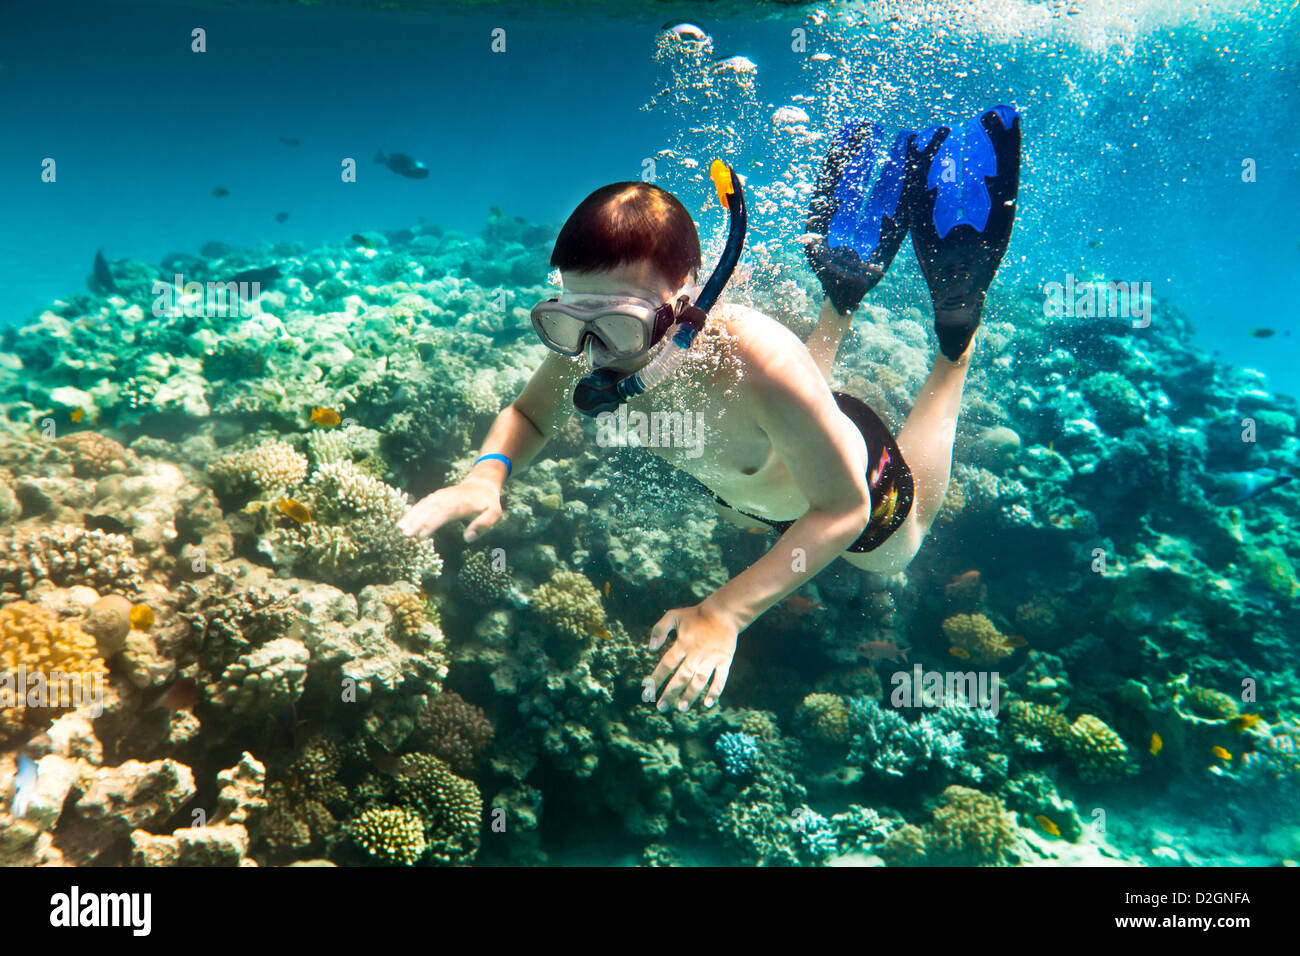 Snorkeler diving le long de la barrière de cerveau Photo Stock